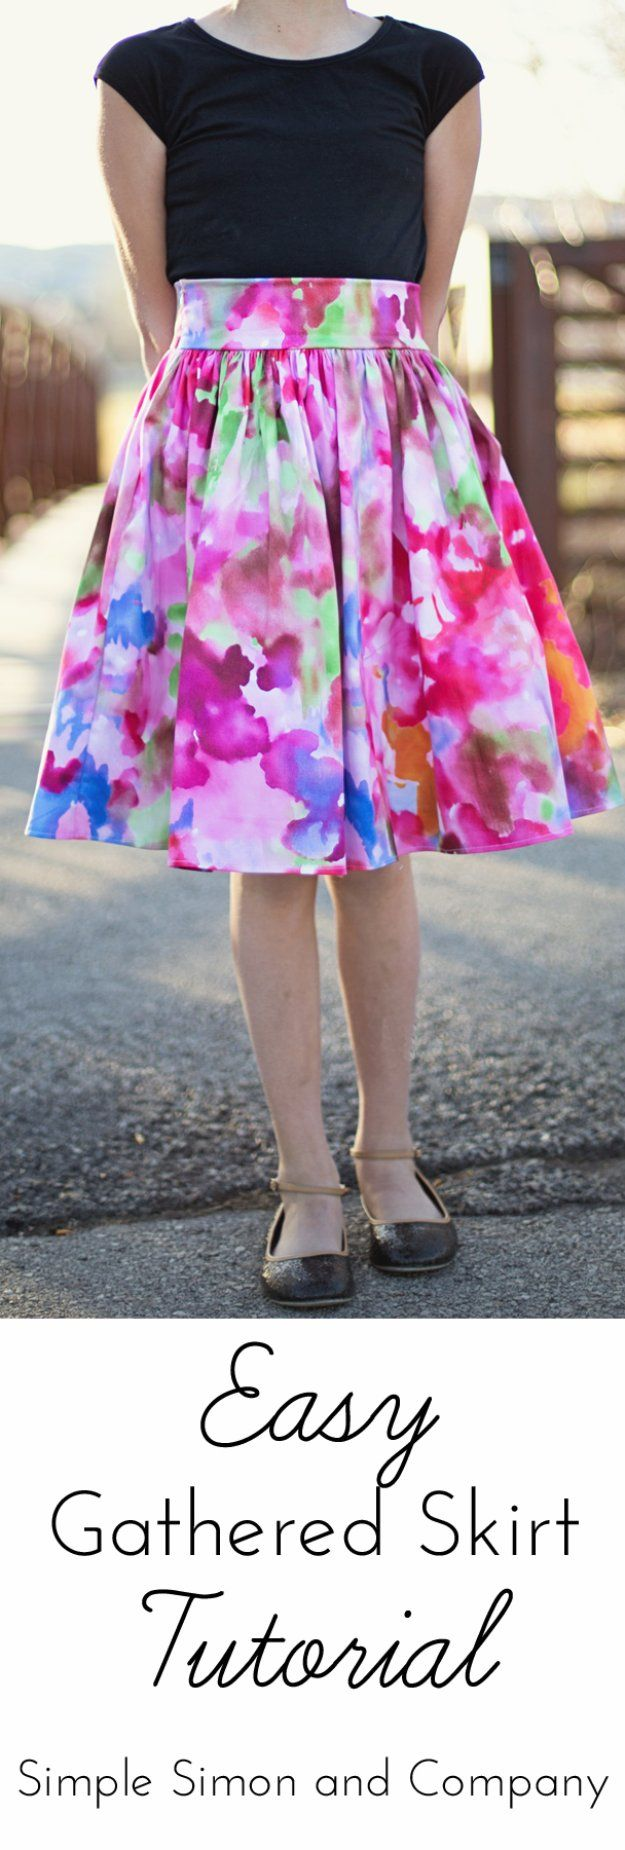 DIY Sewing Projects for Women - Easy Gathered Skirt Tutorial - How to Sew Dresses, Blouses, Pants, Tops and Fashion. Step by Step Tutorials and Instructions  http://diyjoy.com/diy-sewing-projects-for-women